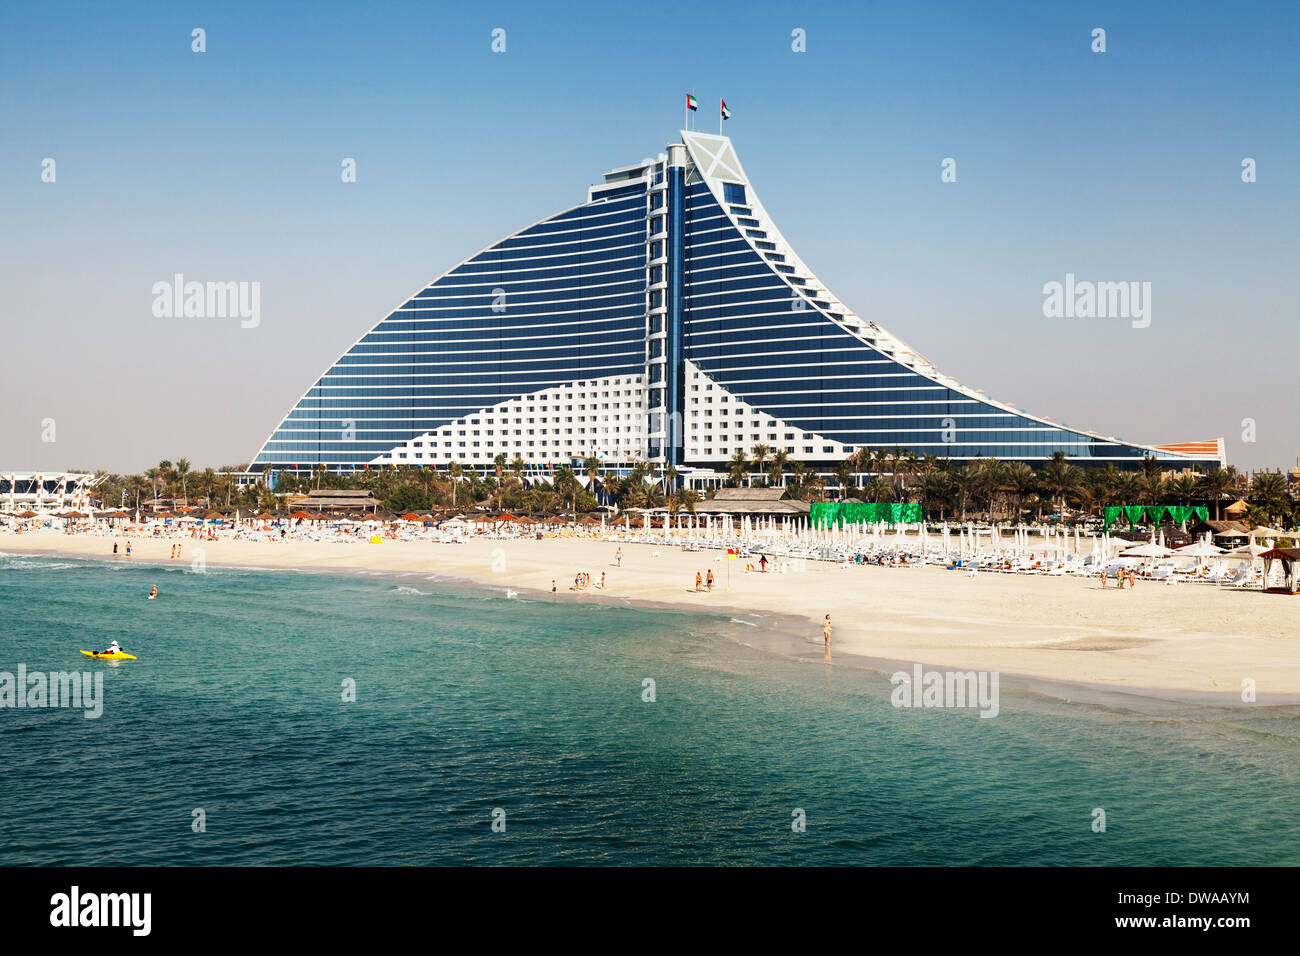 The jumeirah beach hotel dubai a luxury 5 star hotel for Nicest hotel in the world dubai